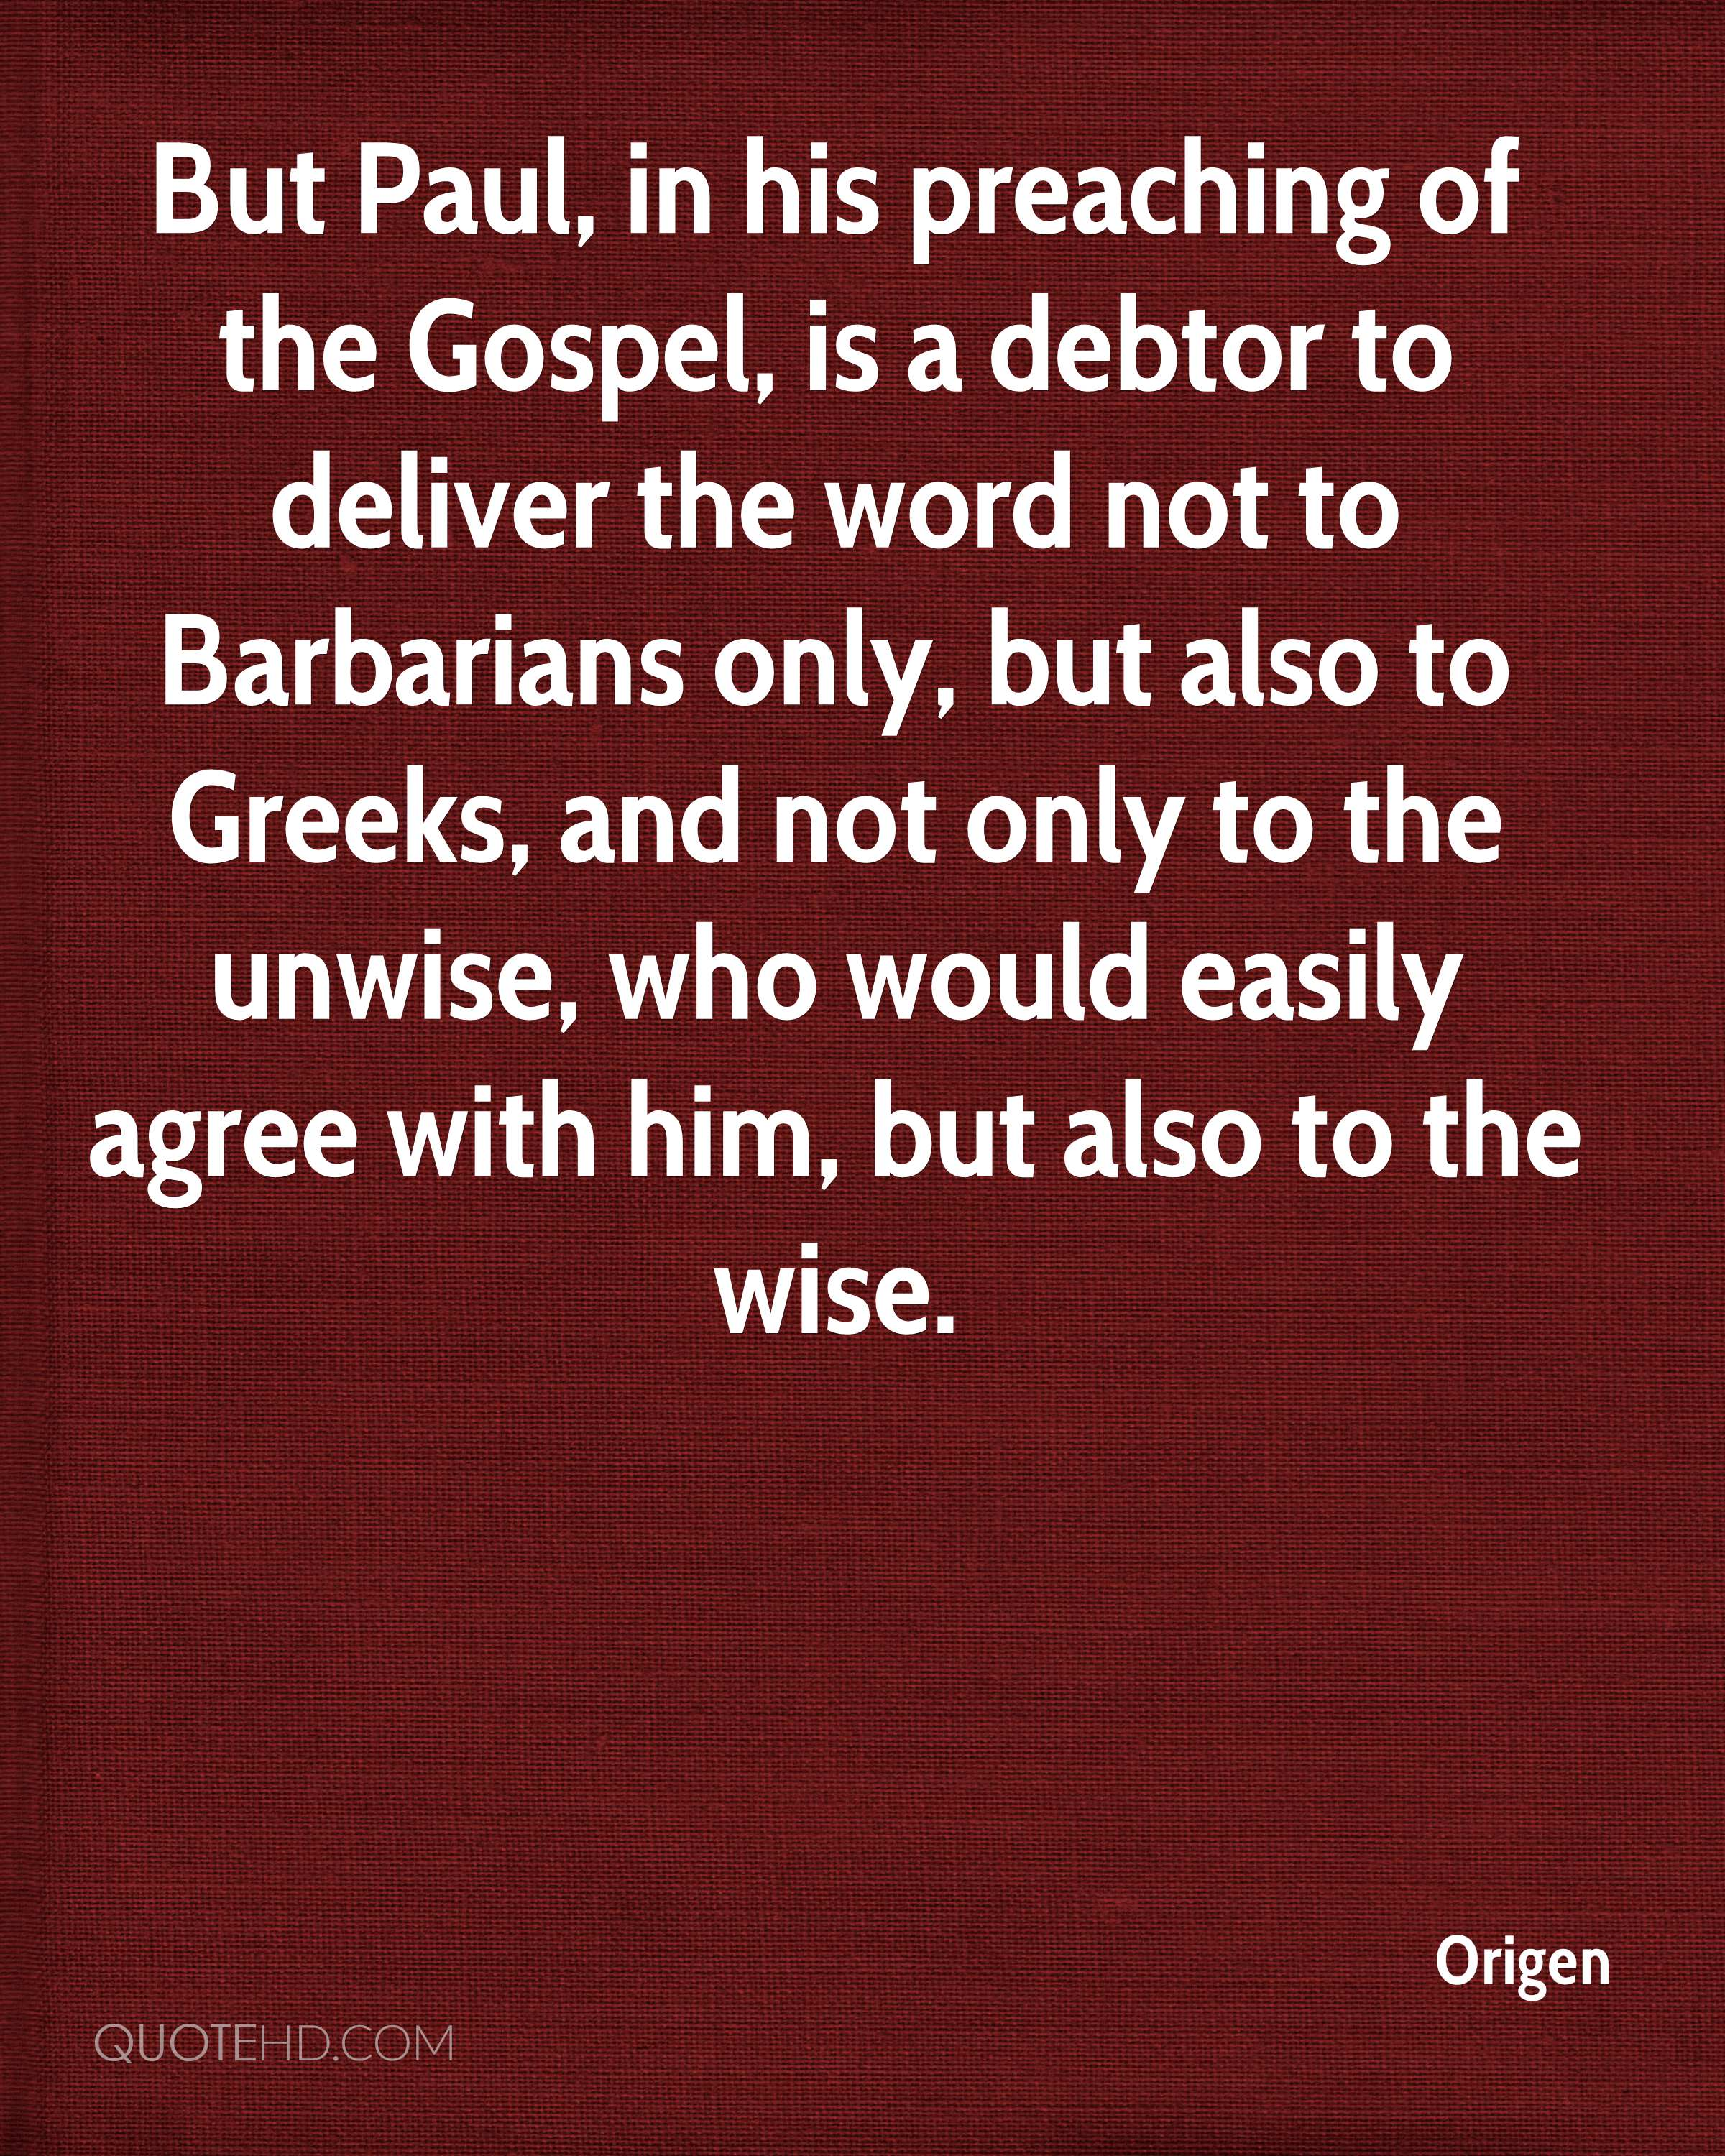 But Paul, in his preaching of the Gospel, is a debtor to deliver the word not to Barbarians only, but also to Greeks, and not only to the unwise, who would easily agree with him, but also to the wise.